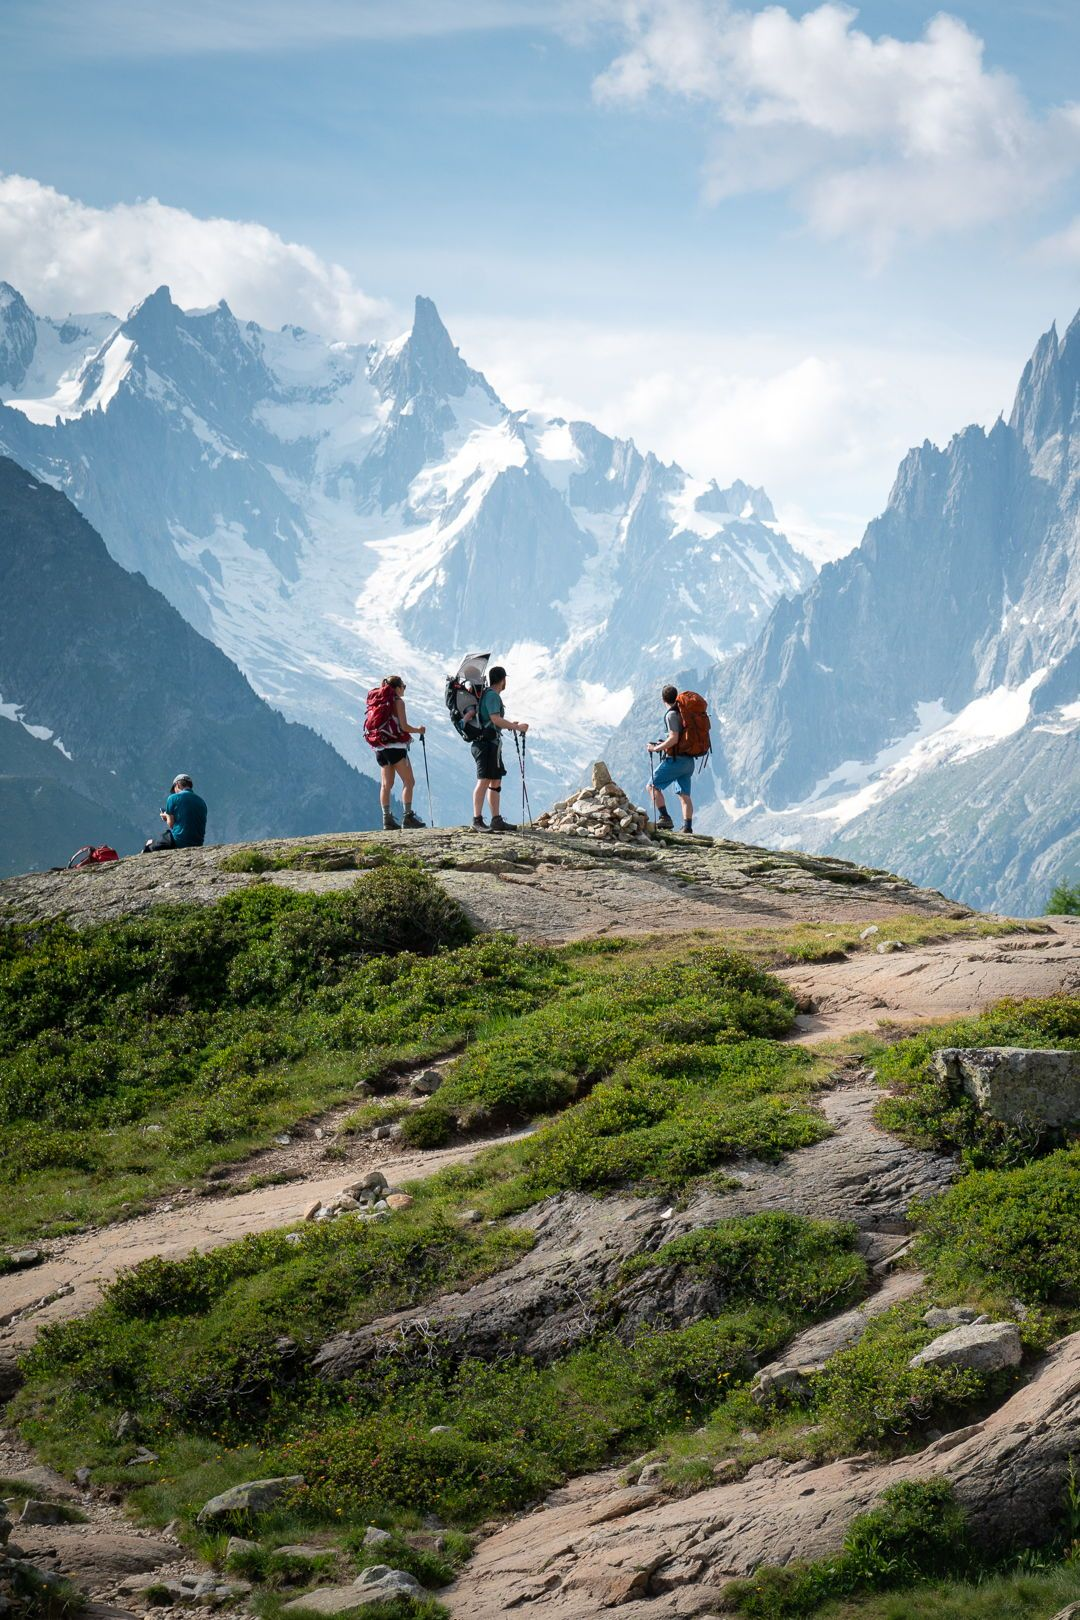 The Tour Du Mont Blanc is one of the world's best hiking trails! Click through for tips, packing list, itinerary, and lots of photography. #hiking #outdoors #bucketlist #travel #adventure